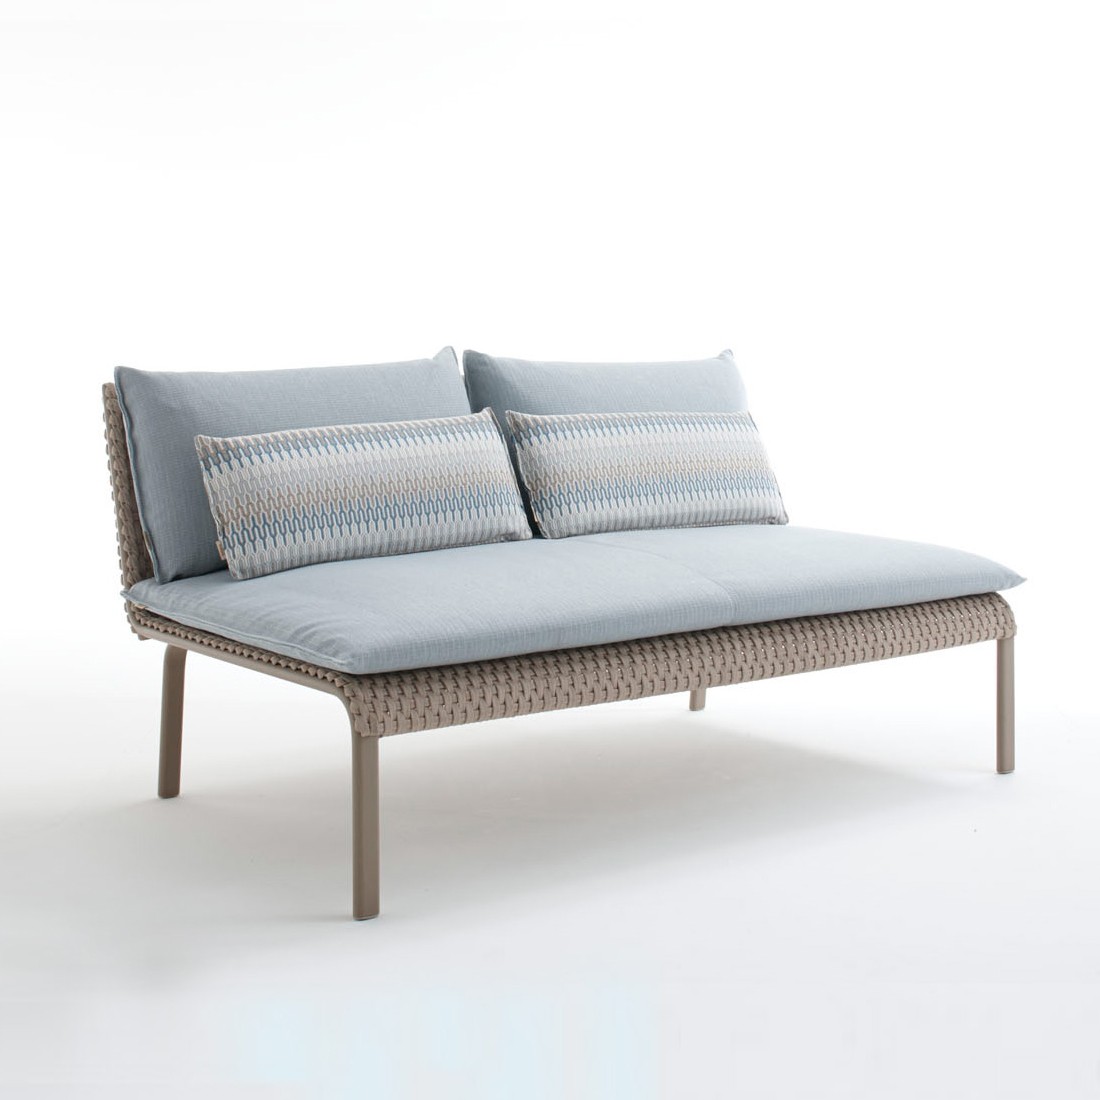 Key west luxury high end sofa italian designer luxury for Outdoor furniture high end